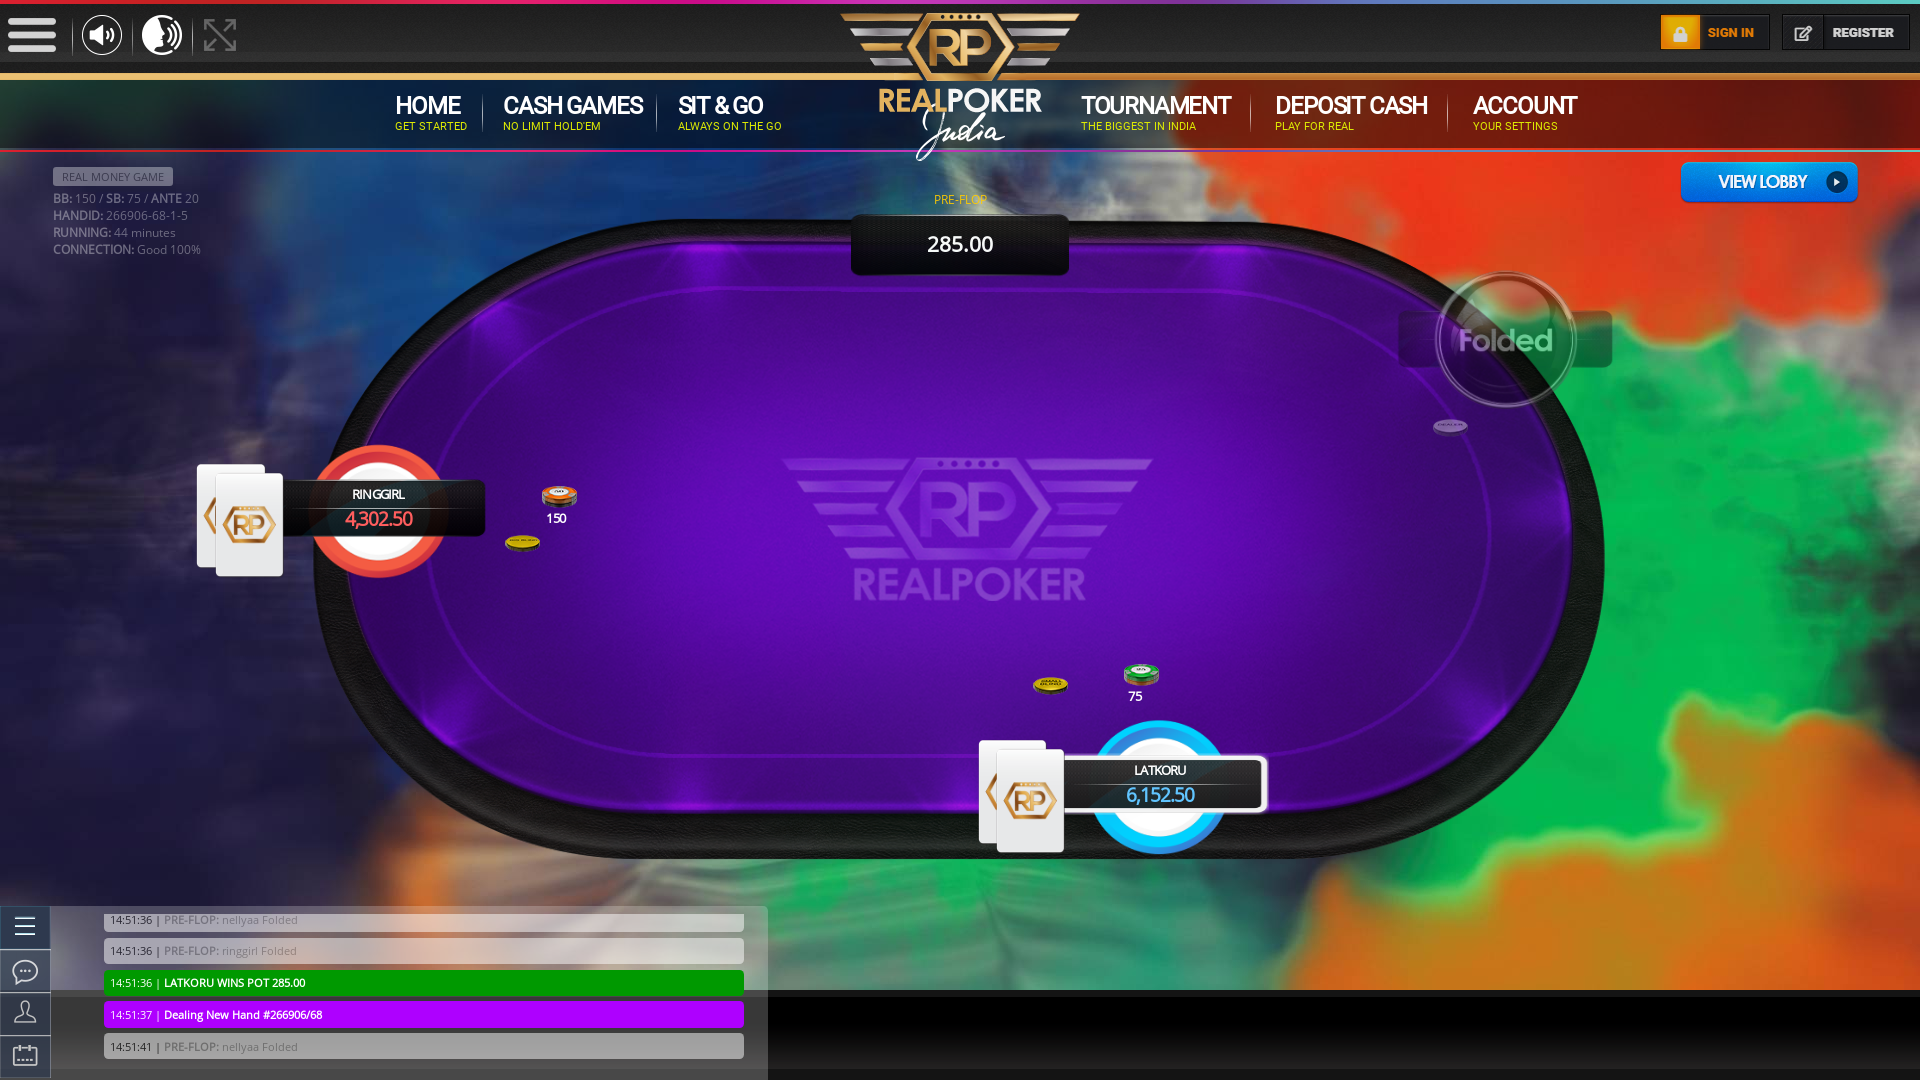 Chittaranjan Park, New Delhi online poker game on a 10 player table in the 44th minute of the match